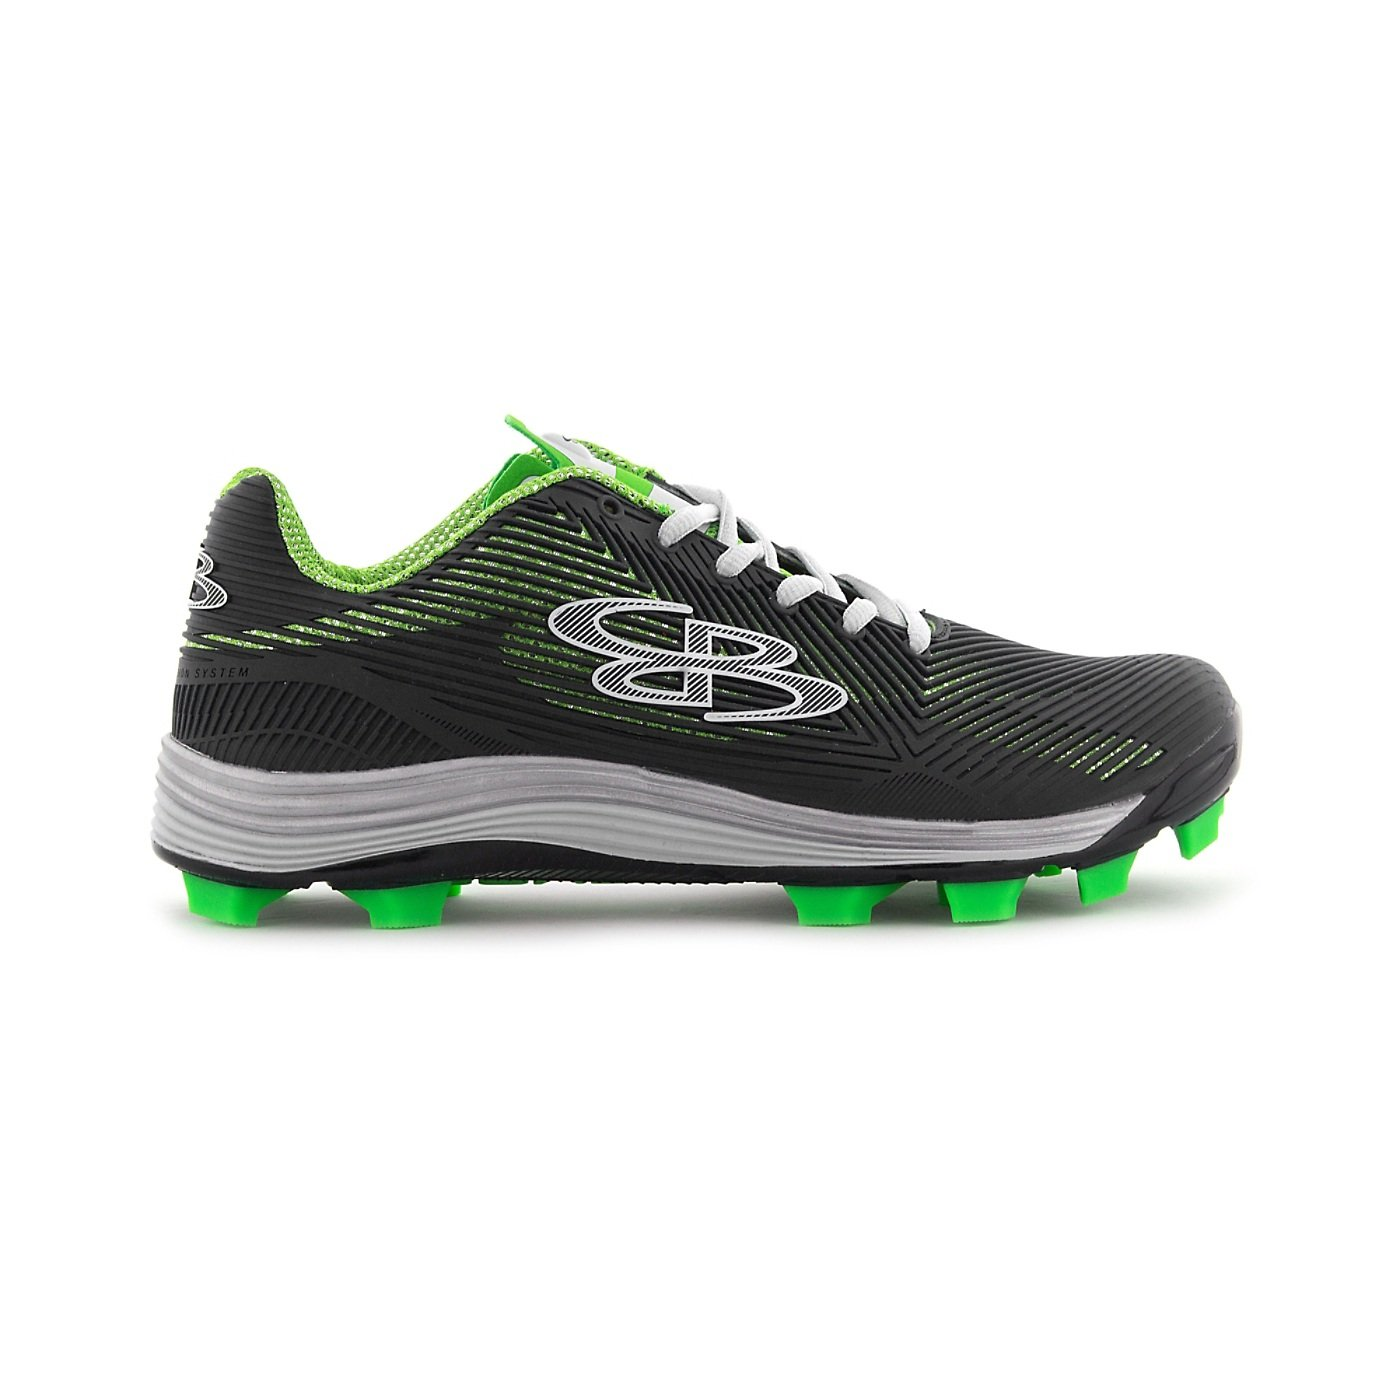 Boombah Women's Spotlight Molded Cleat Black/Lime Green - Size 12 by Boombah